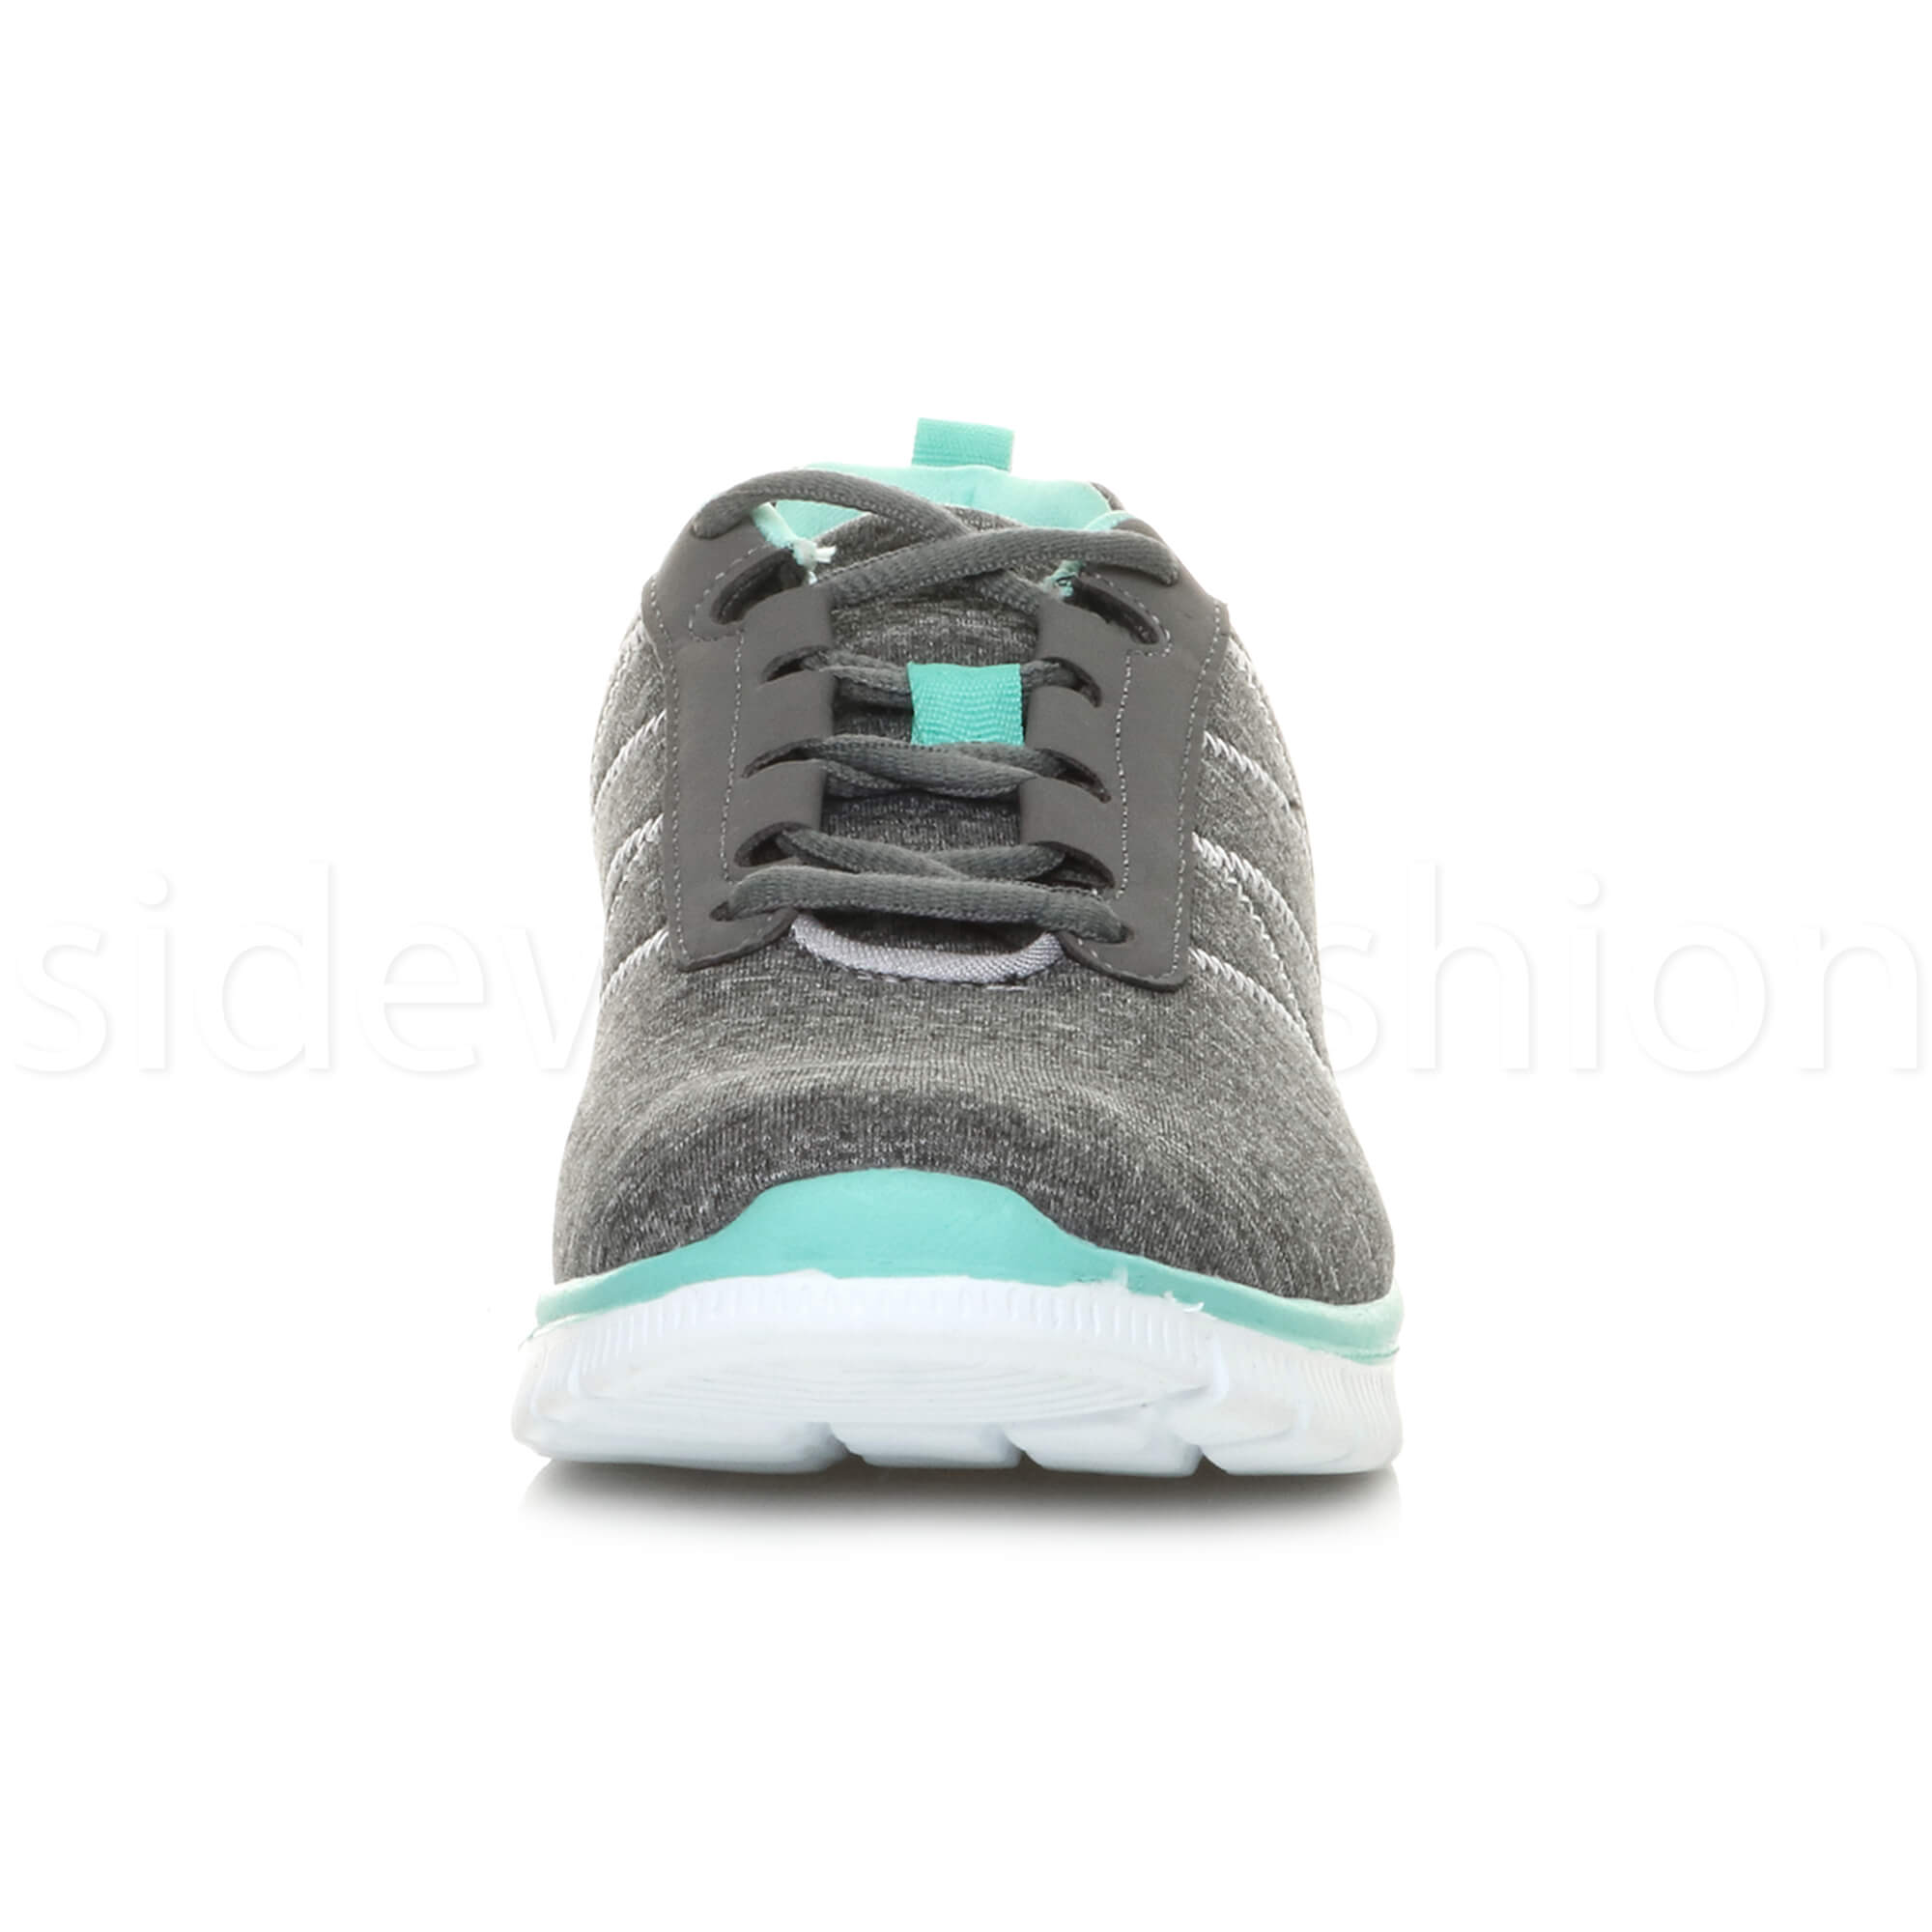 Womens-ladies-comfort-memory-foam-lace-up-trainers-activewear-sneakers-gym-shoes thumbnail 49